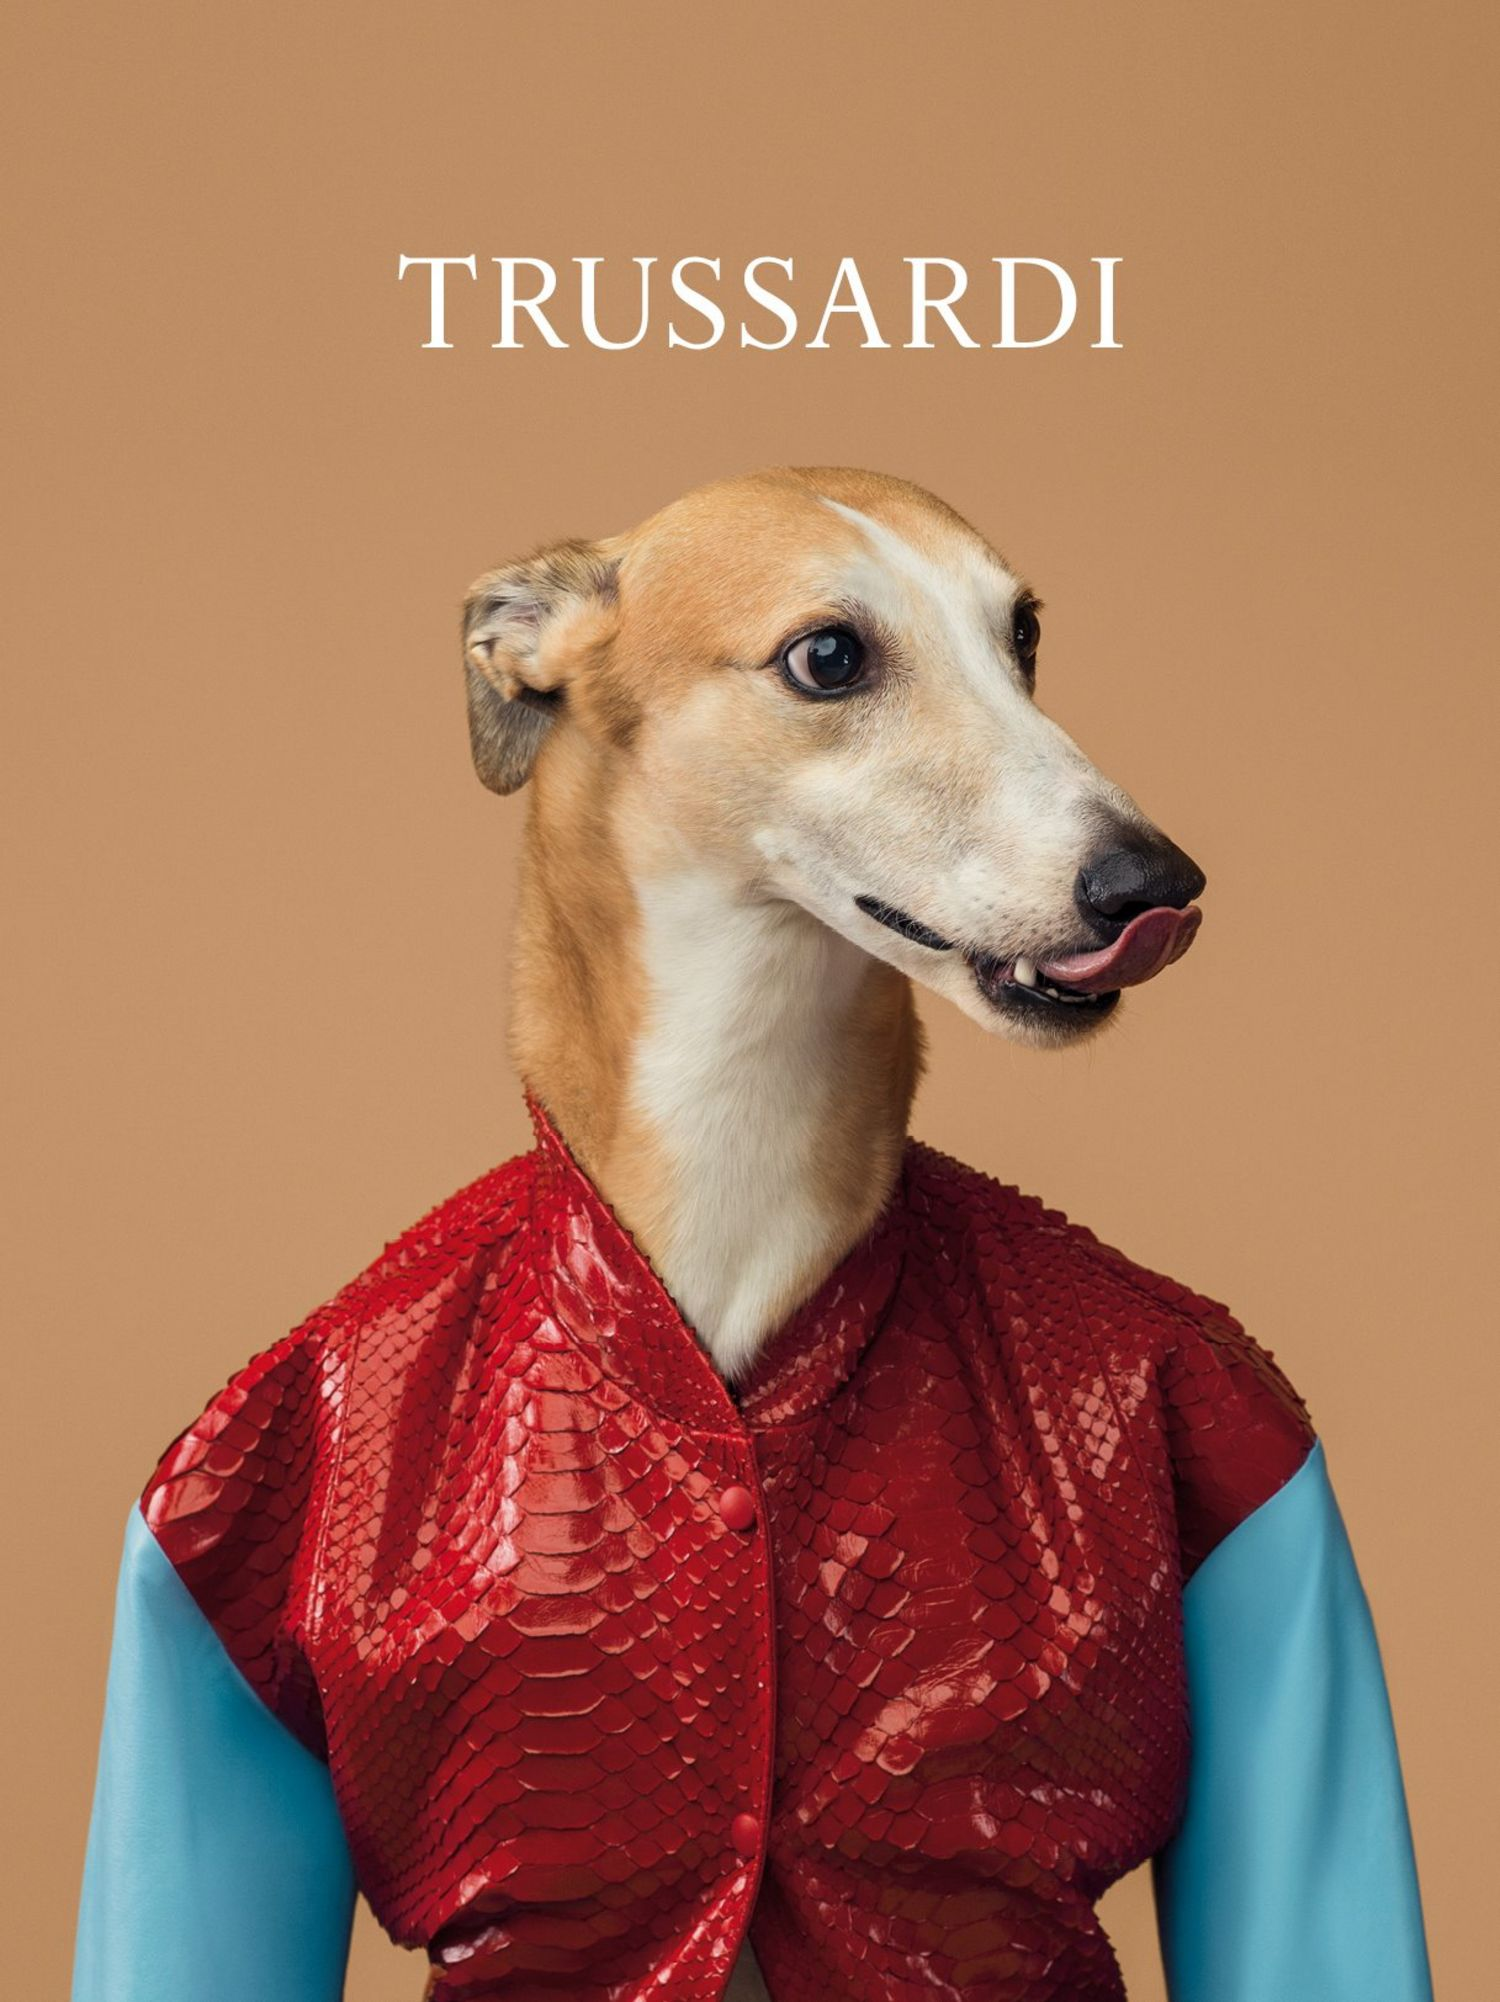 trussardi-dog-2-main